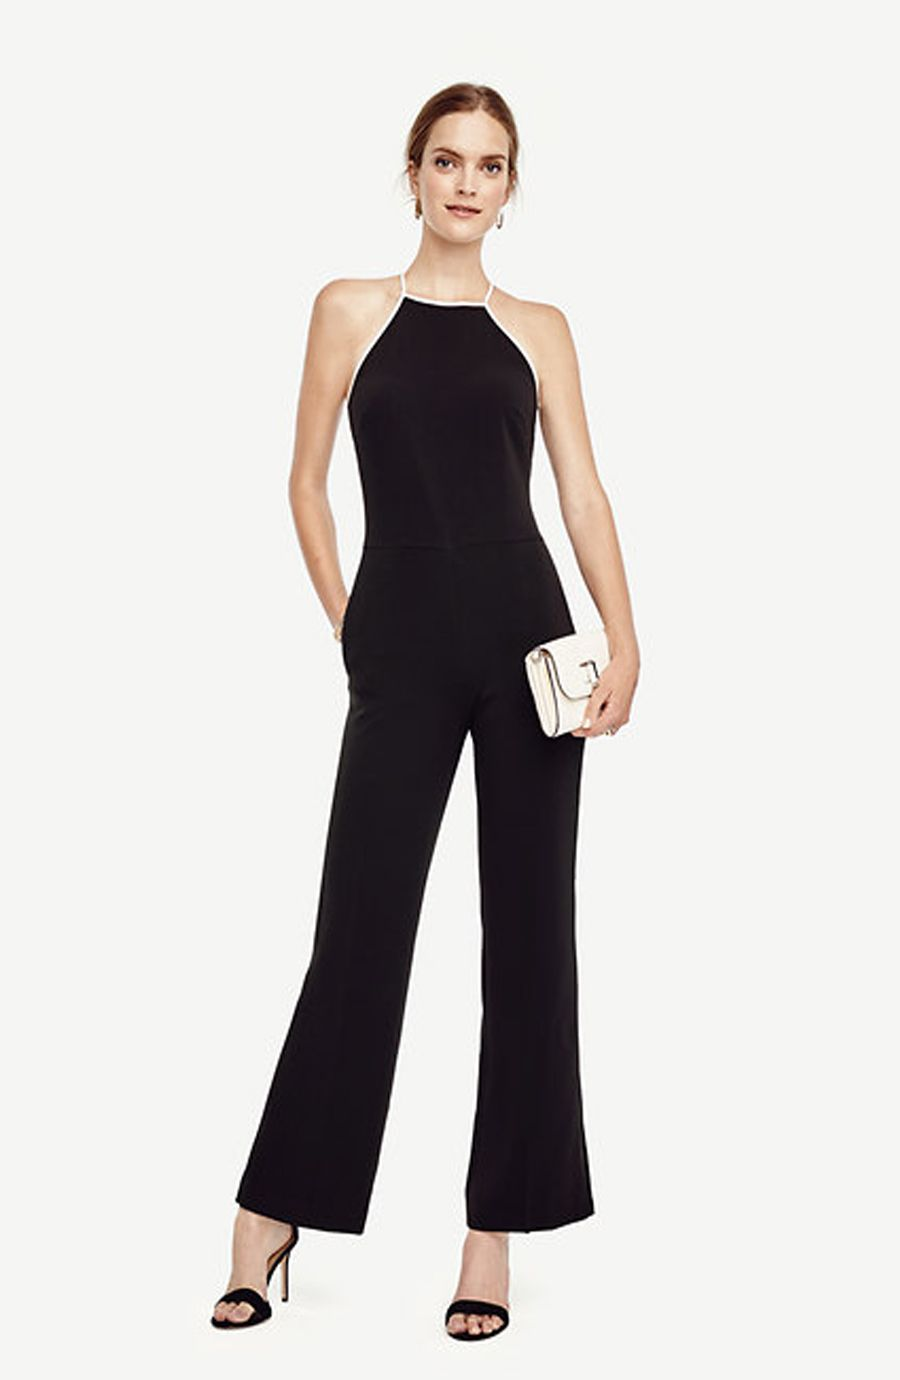 4b86bdfb29d0 25 Jumpsuits You Could Totally Get Away With Wearing to a Wedding ...